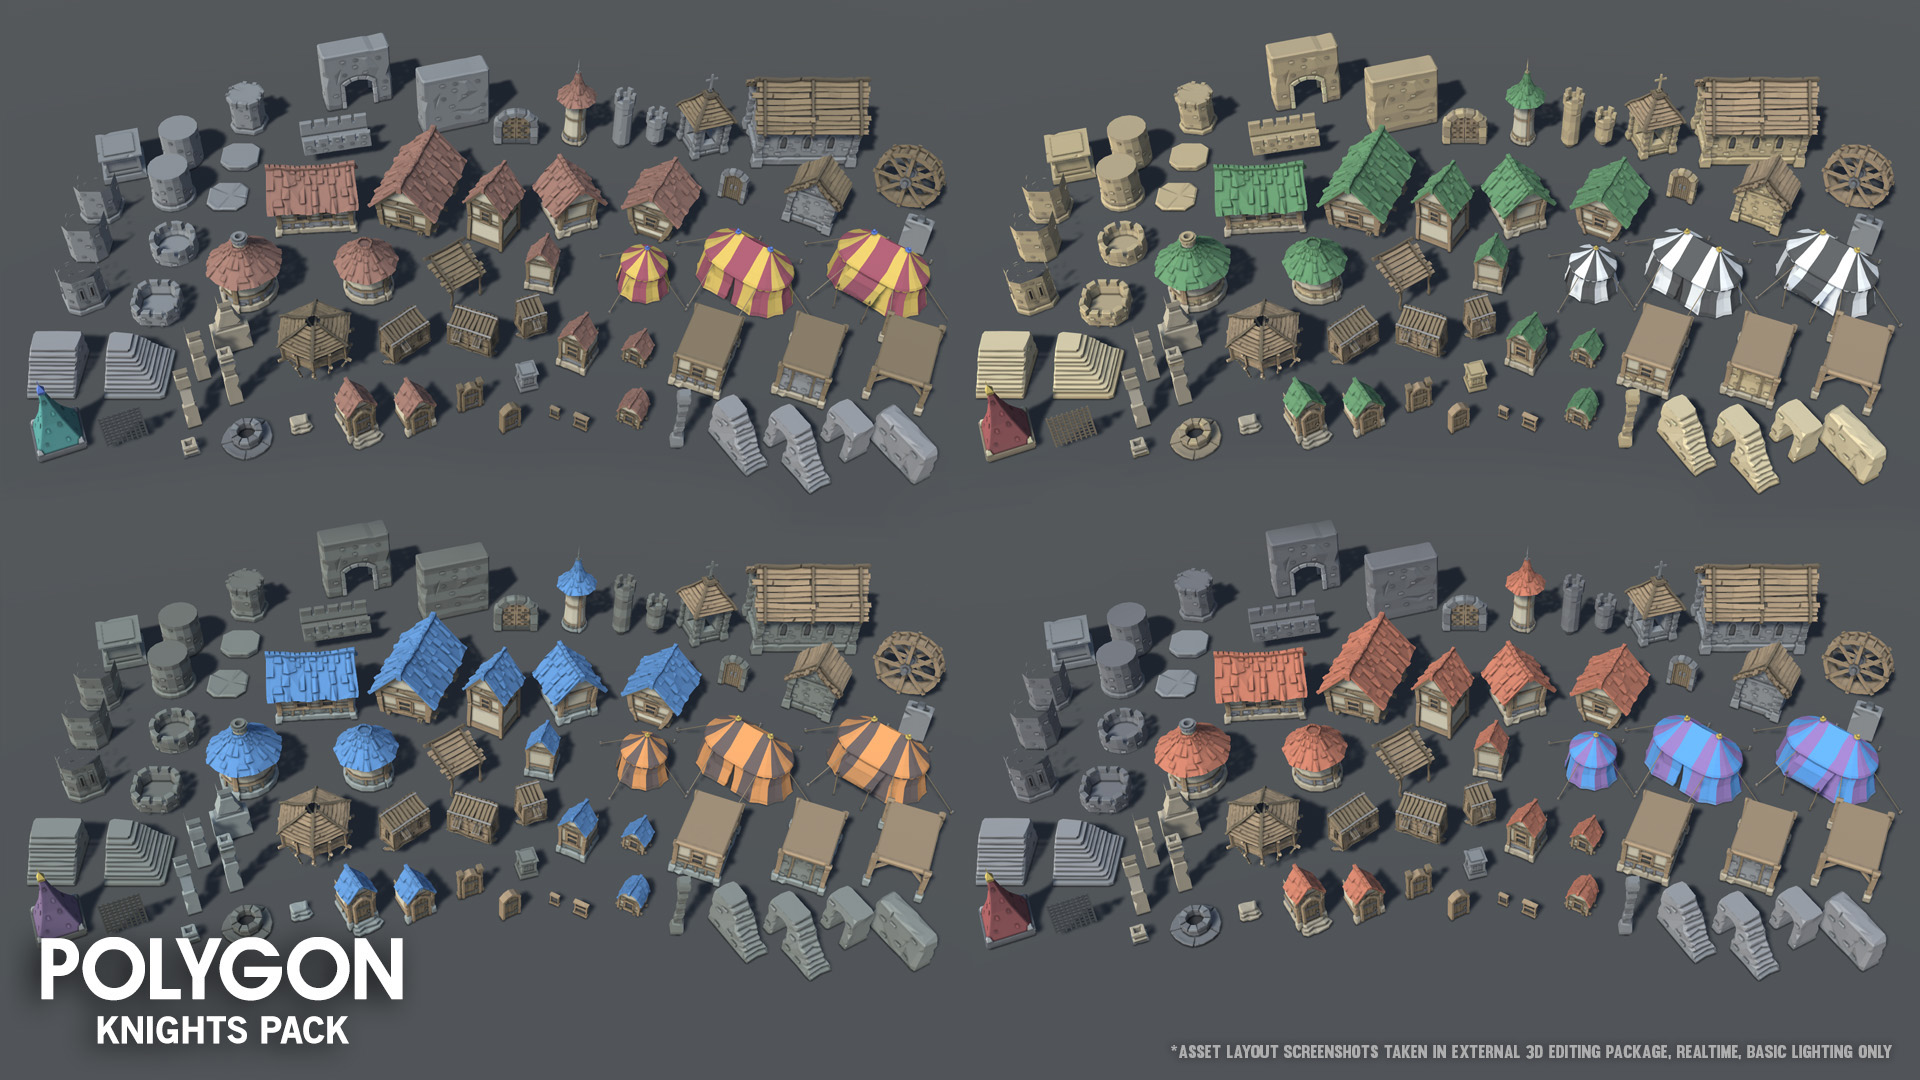 Polygon Knights Pack